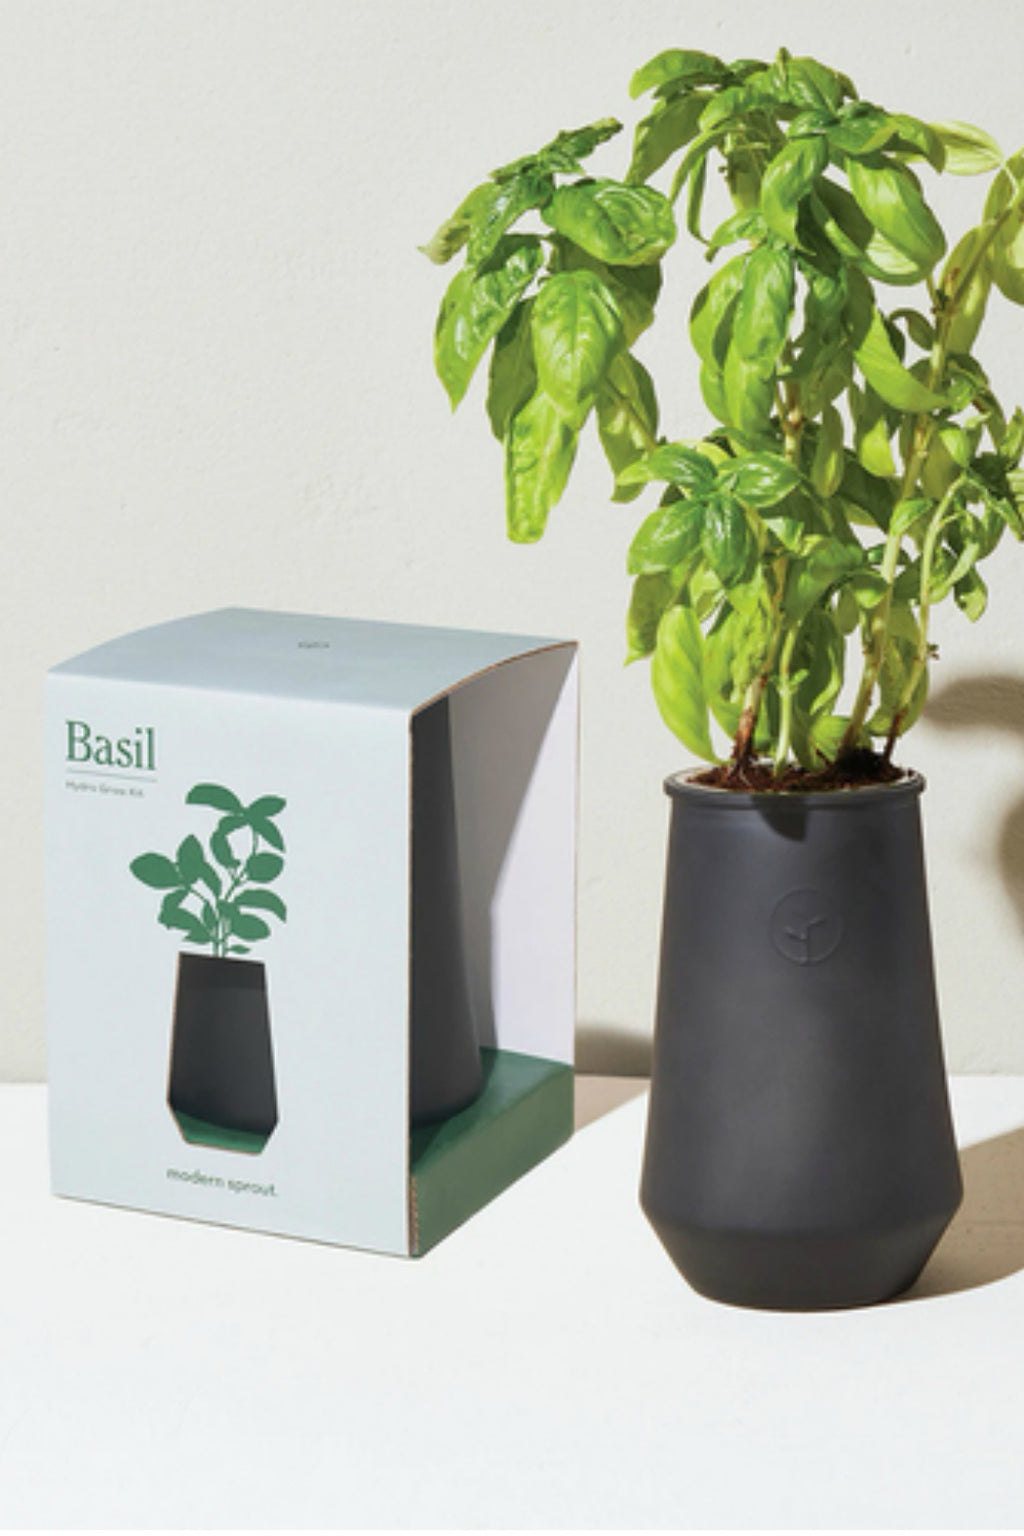 Modern Sprout Black Tapered Tumbler Hydroponic Grow Kit - Basil